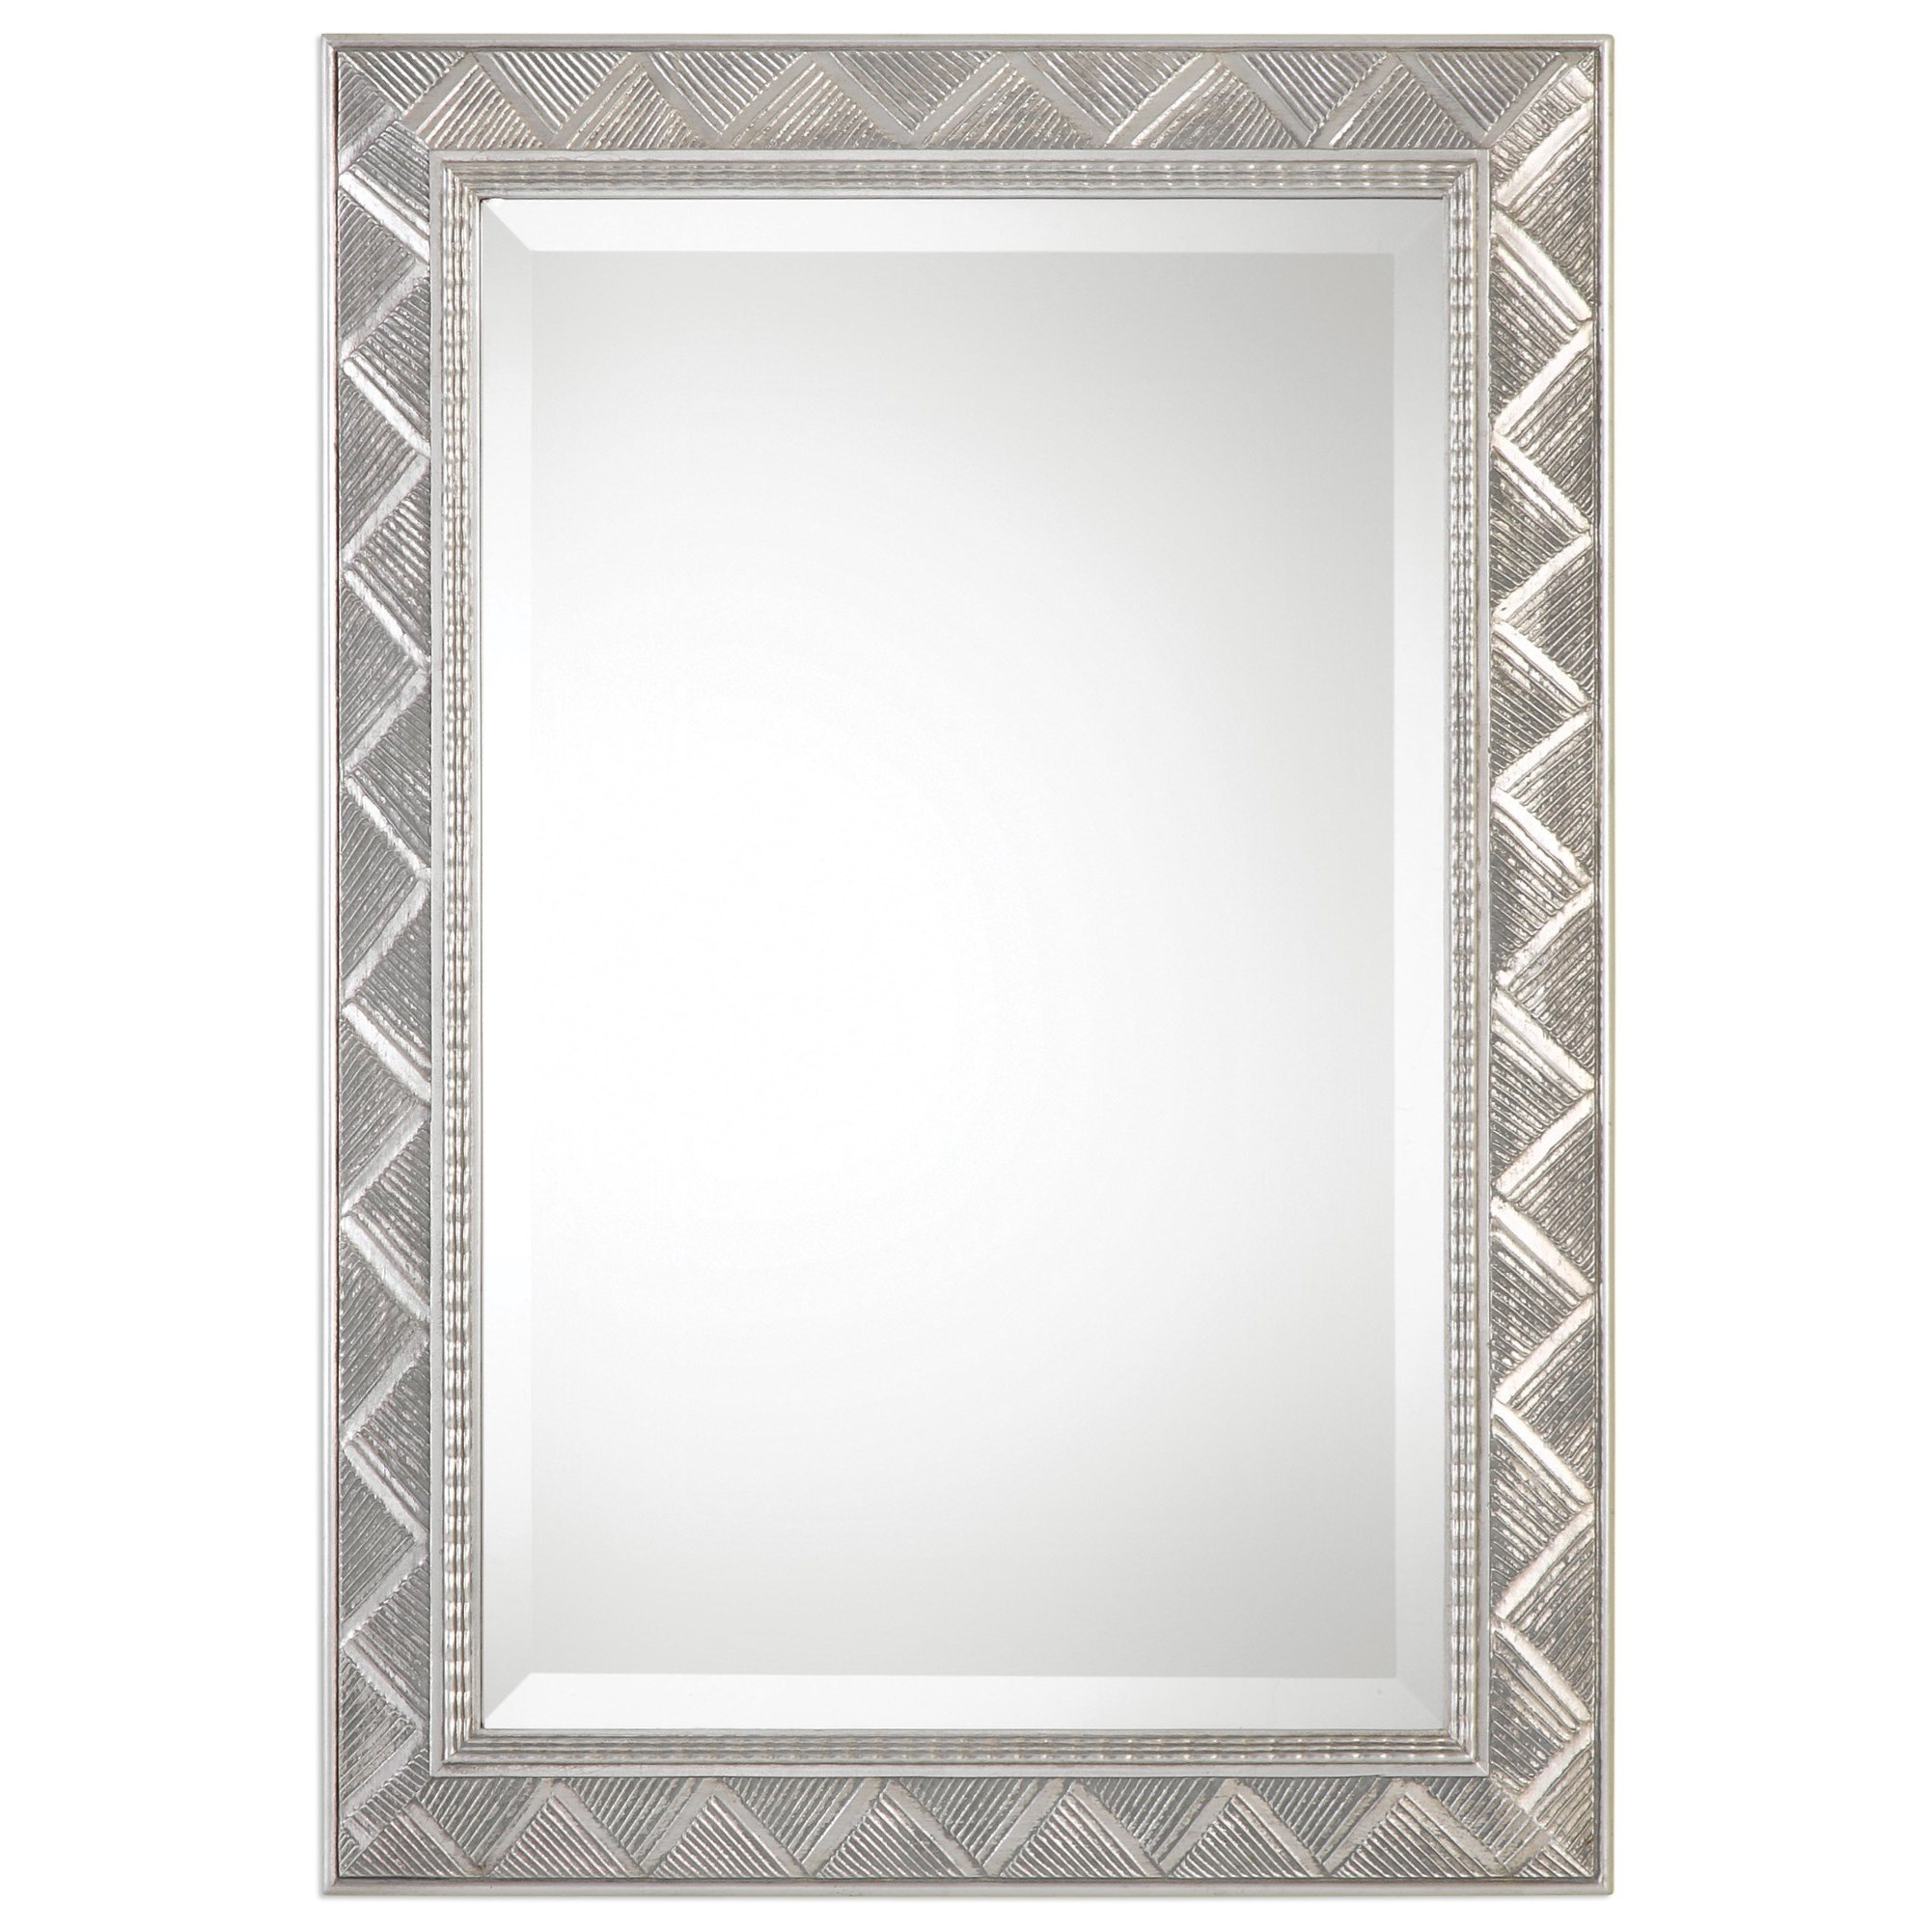 Uttermost Mirrors Ioway - Item Number: 09172